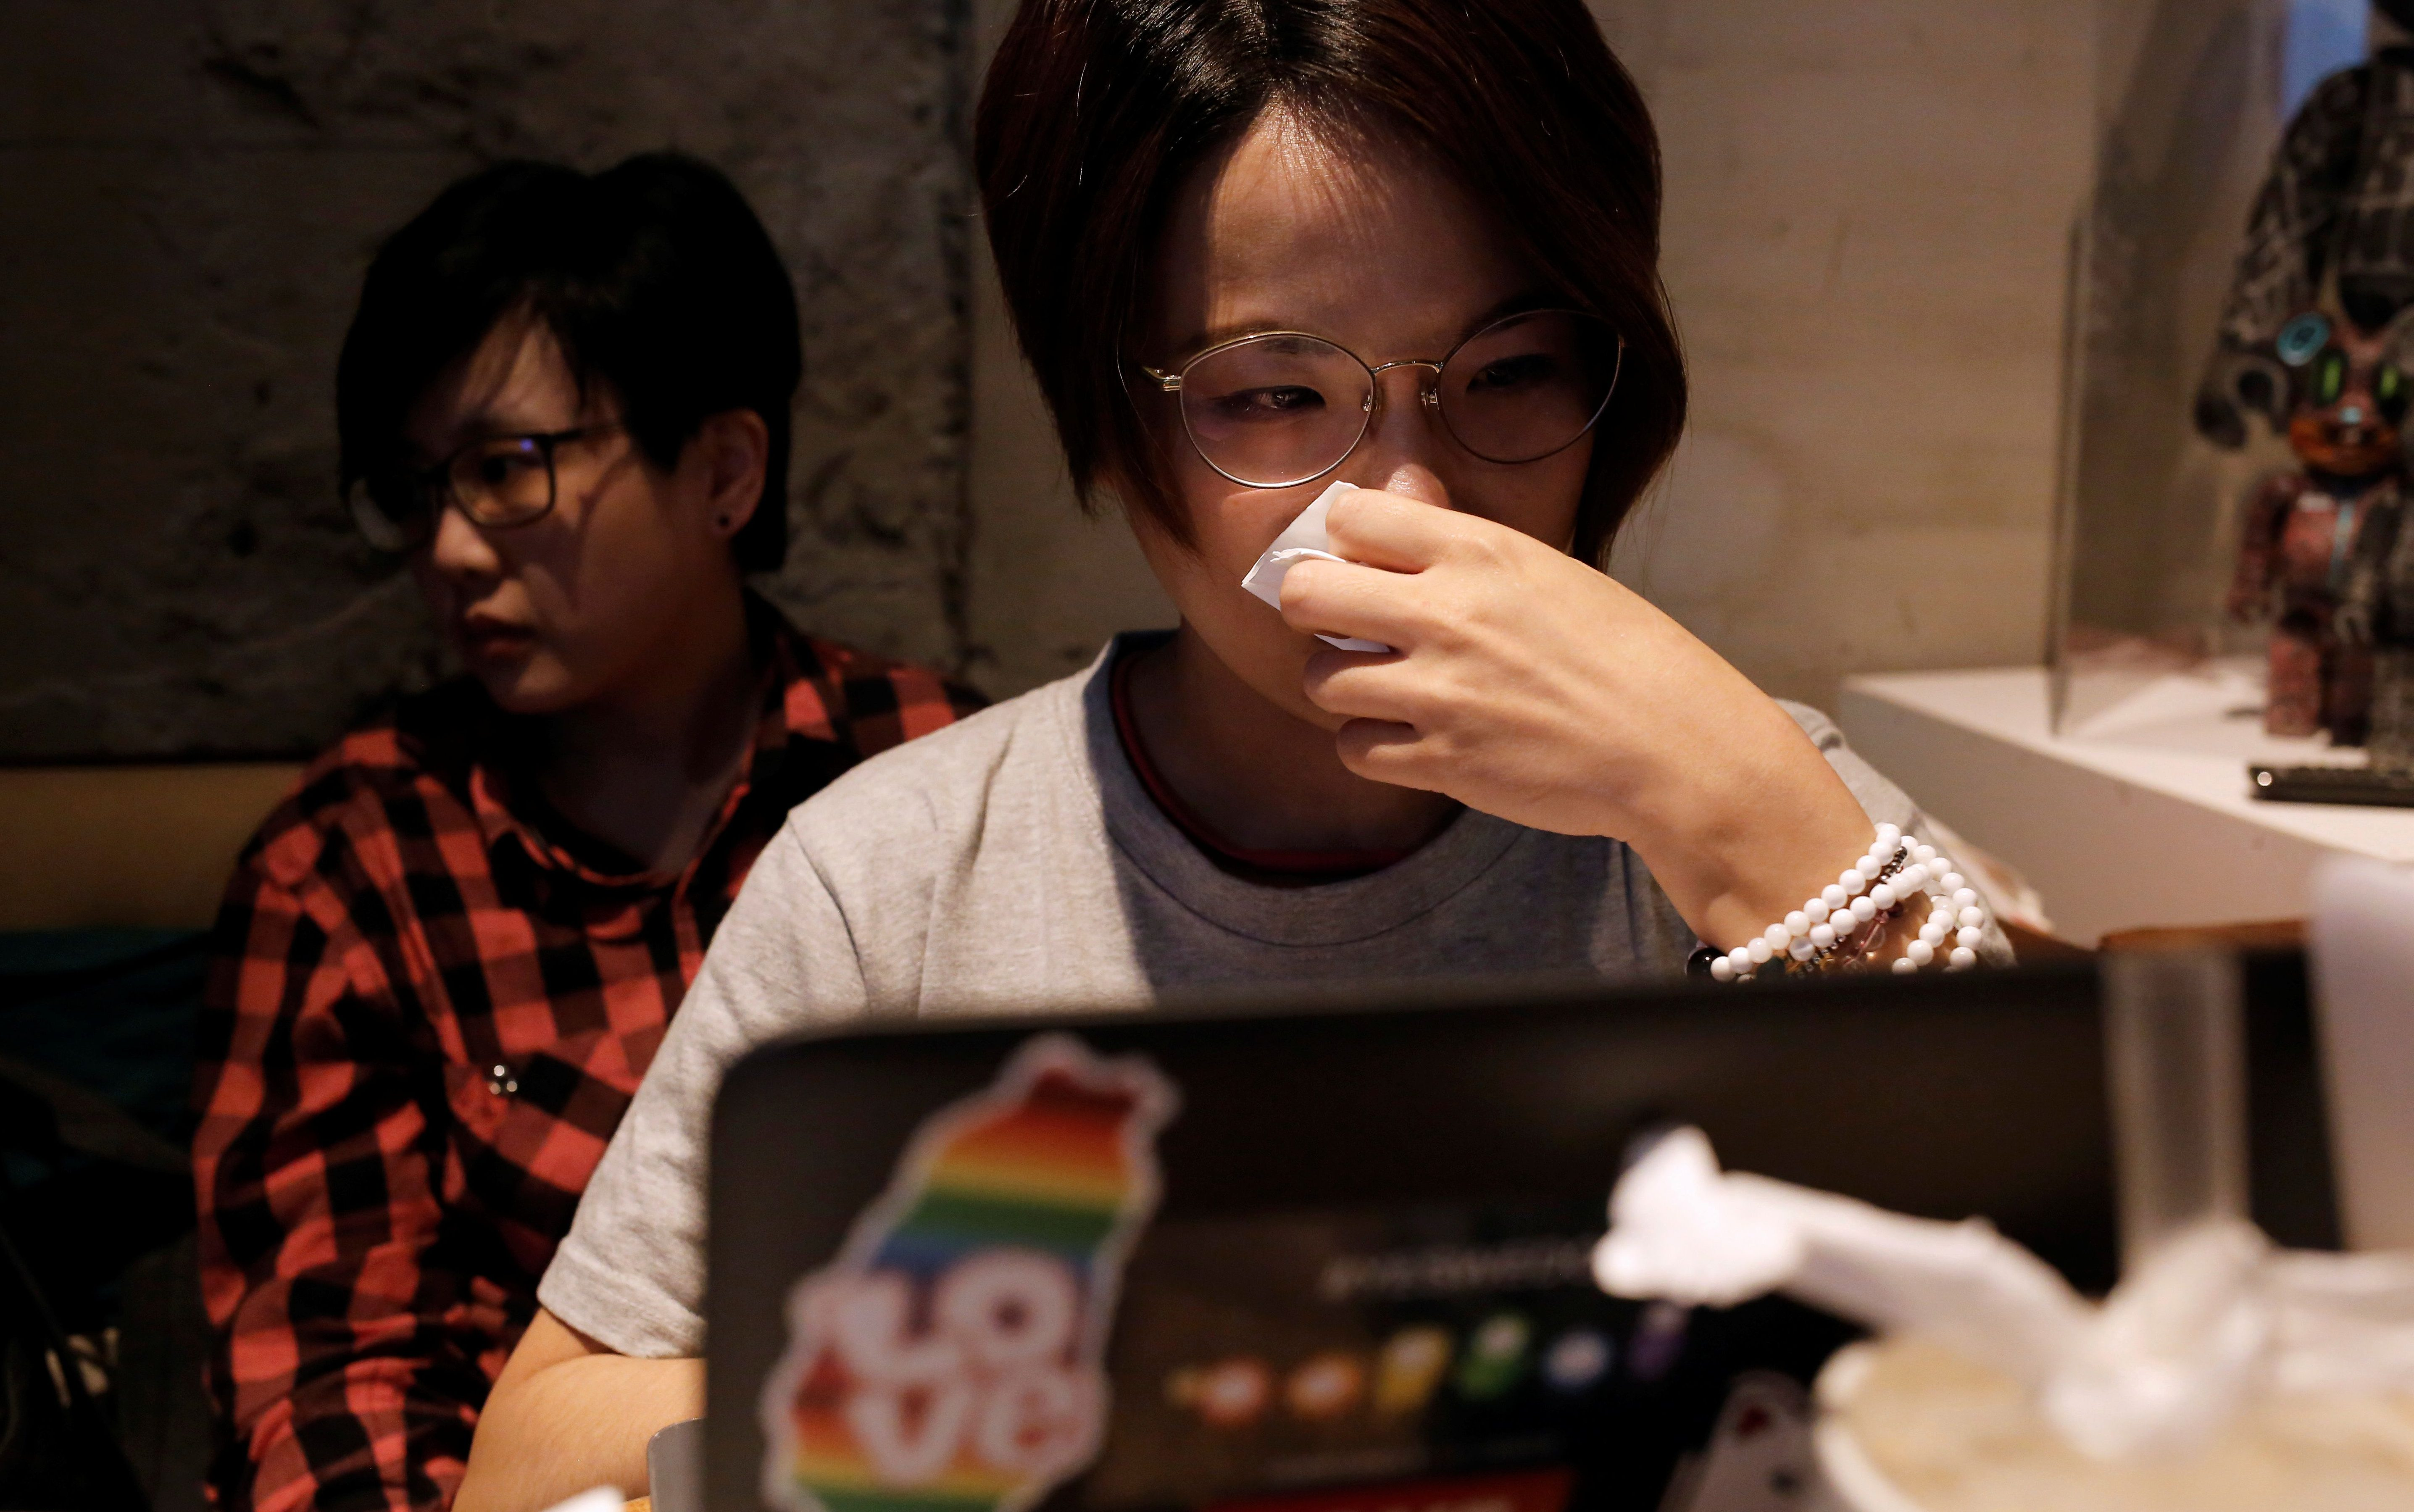 LGBT supporters cry after losing the referendum in Taipei, Taiwan November 24, 2018.